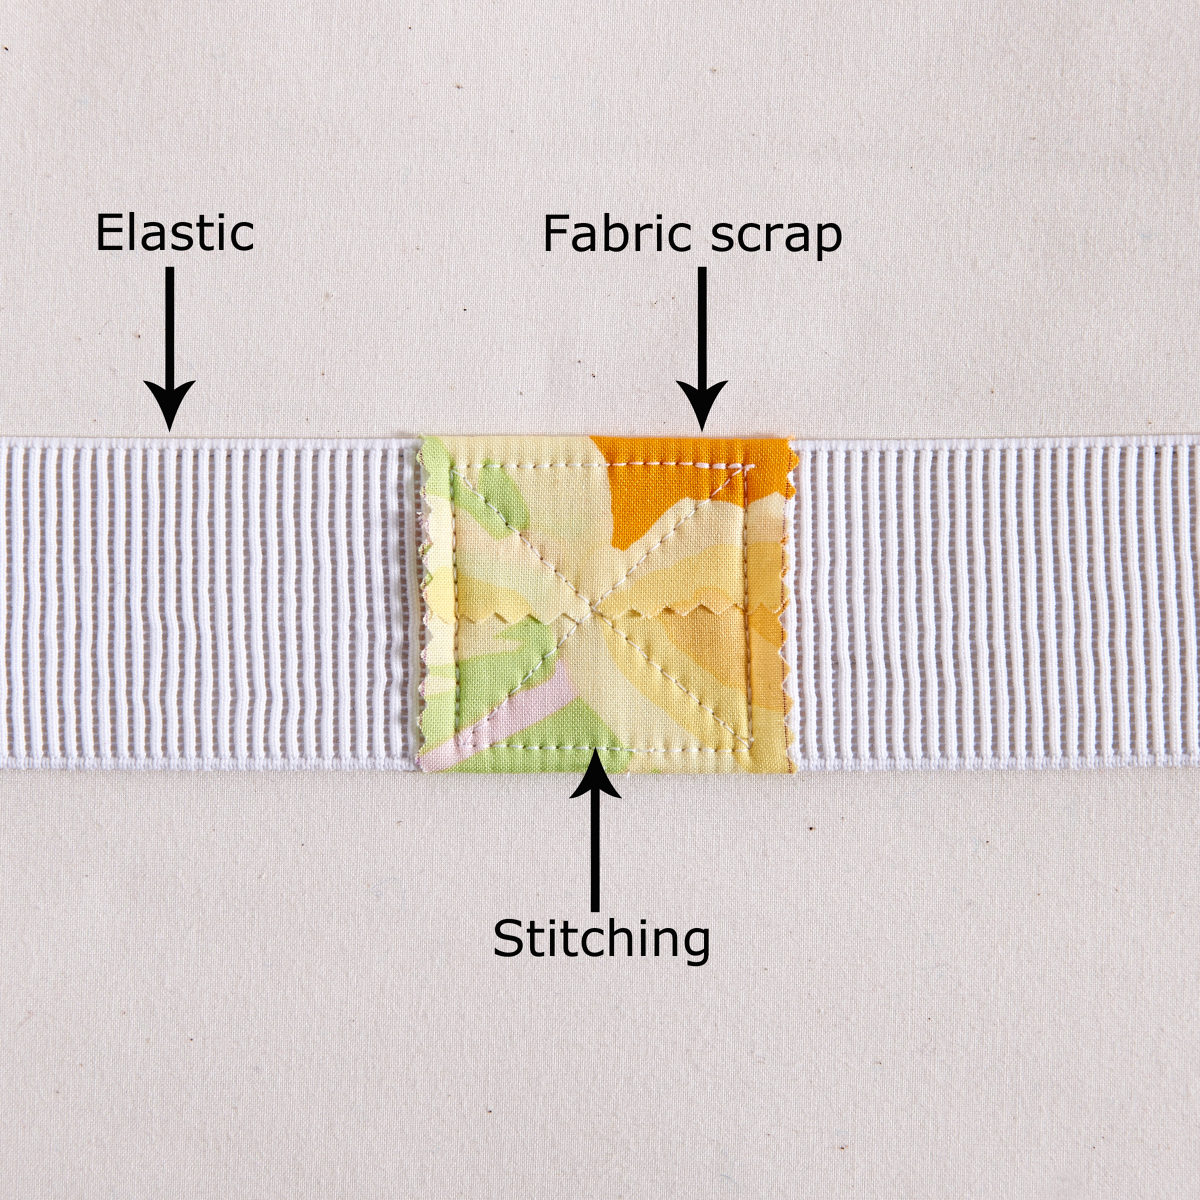 how to add elastic waistband to jeans